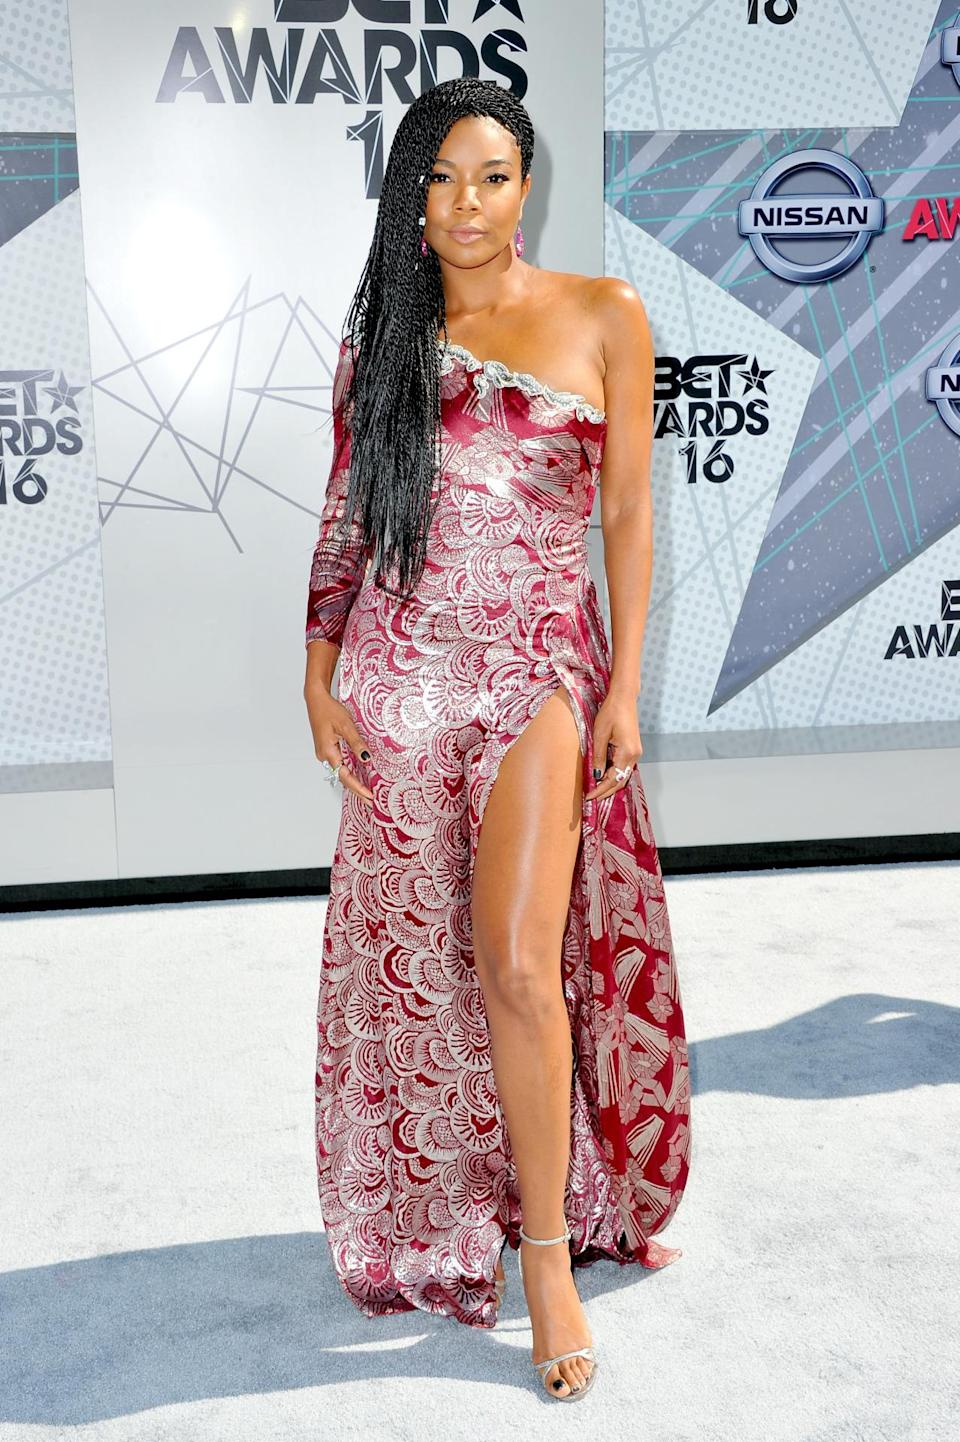 <p>Debuting a new Sengalese braids aka twisted braids hairstyle that set Twitter on fire, Gabrielle Union looked so hot in in a one-shoulder red dress with a white fan pattern. <i>(Photo: Getty Images)</i></p>